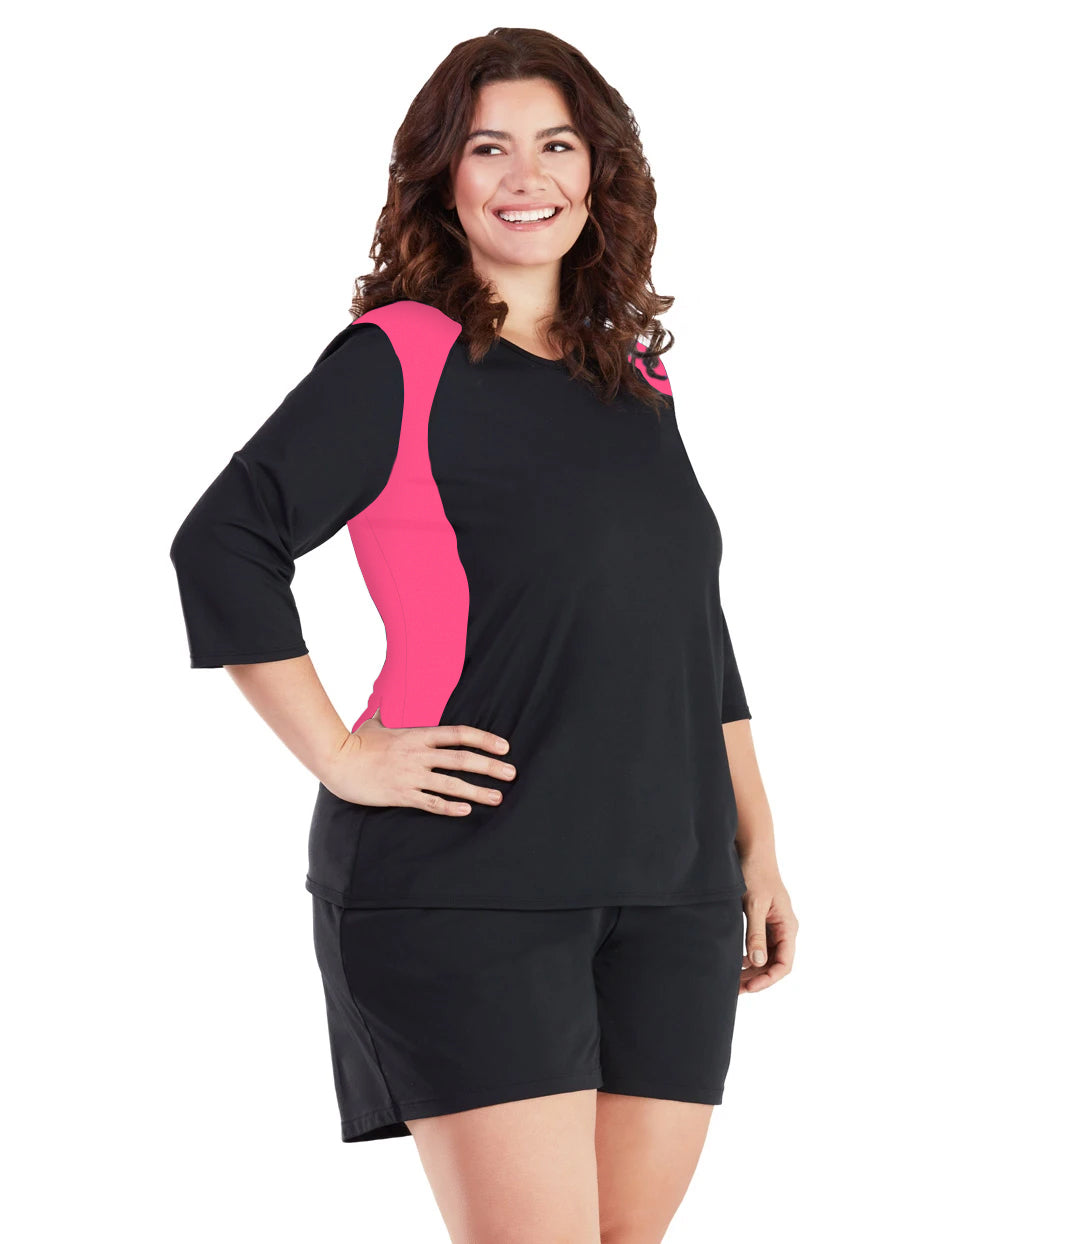 AquaSport Three Quarter Sleeve Rash Guard - Pink and Black-Swim Tops-SFO Apparel-XL-Pink/Black-JunoActive